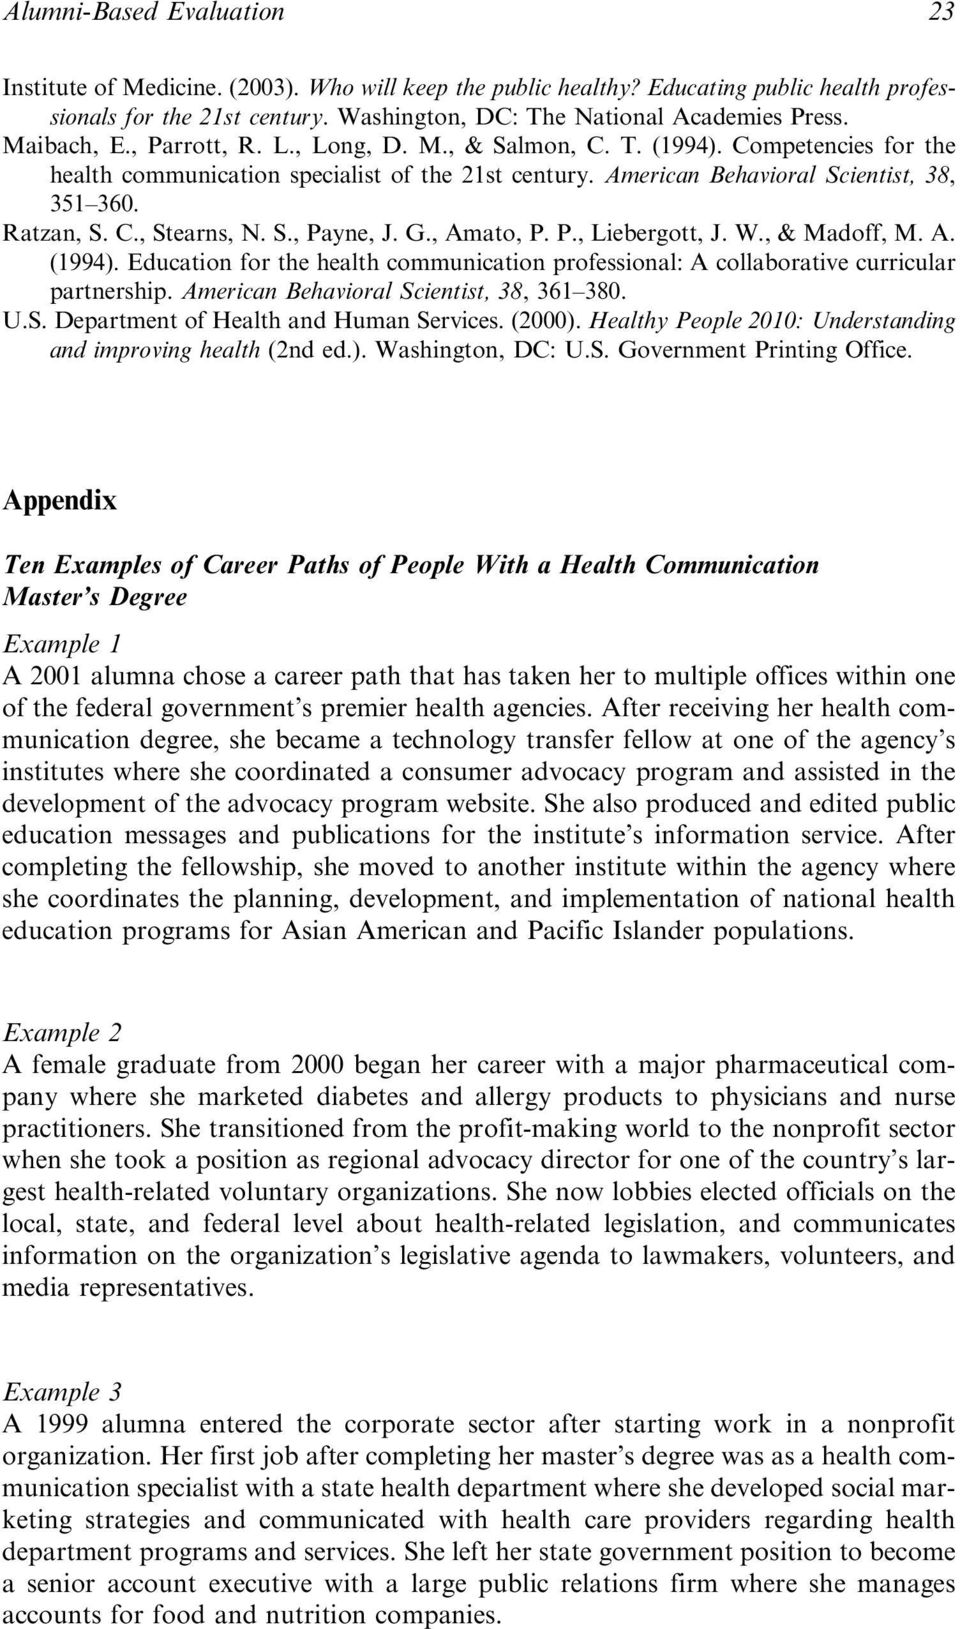 S., Payne, J. G., Amato, P. P., Liebergott, J. W., & Madoff, M. A. (1994). Education for the health communication professional: A collaborative curricular partnership.